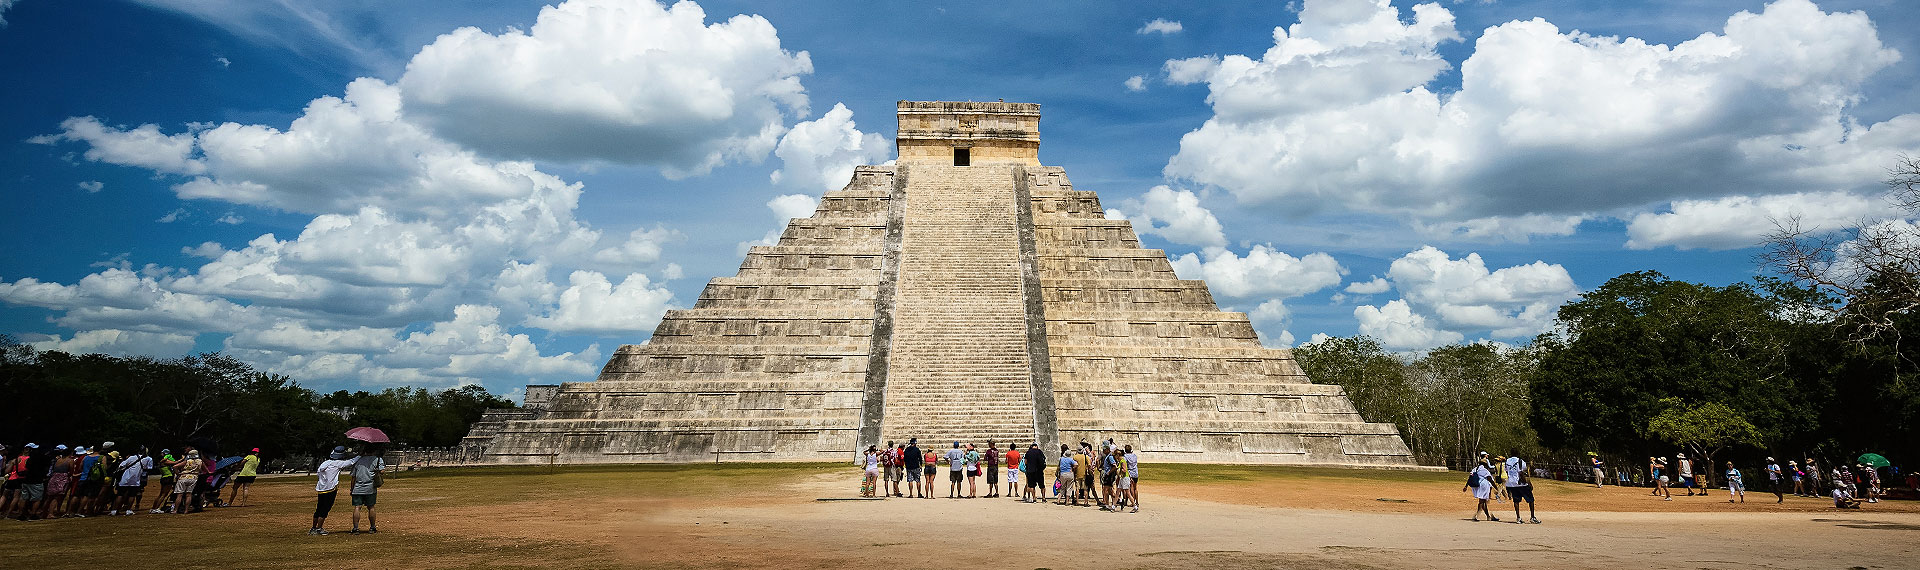 Meet the pyramids on a Chichen Itza tour